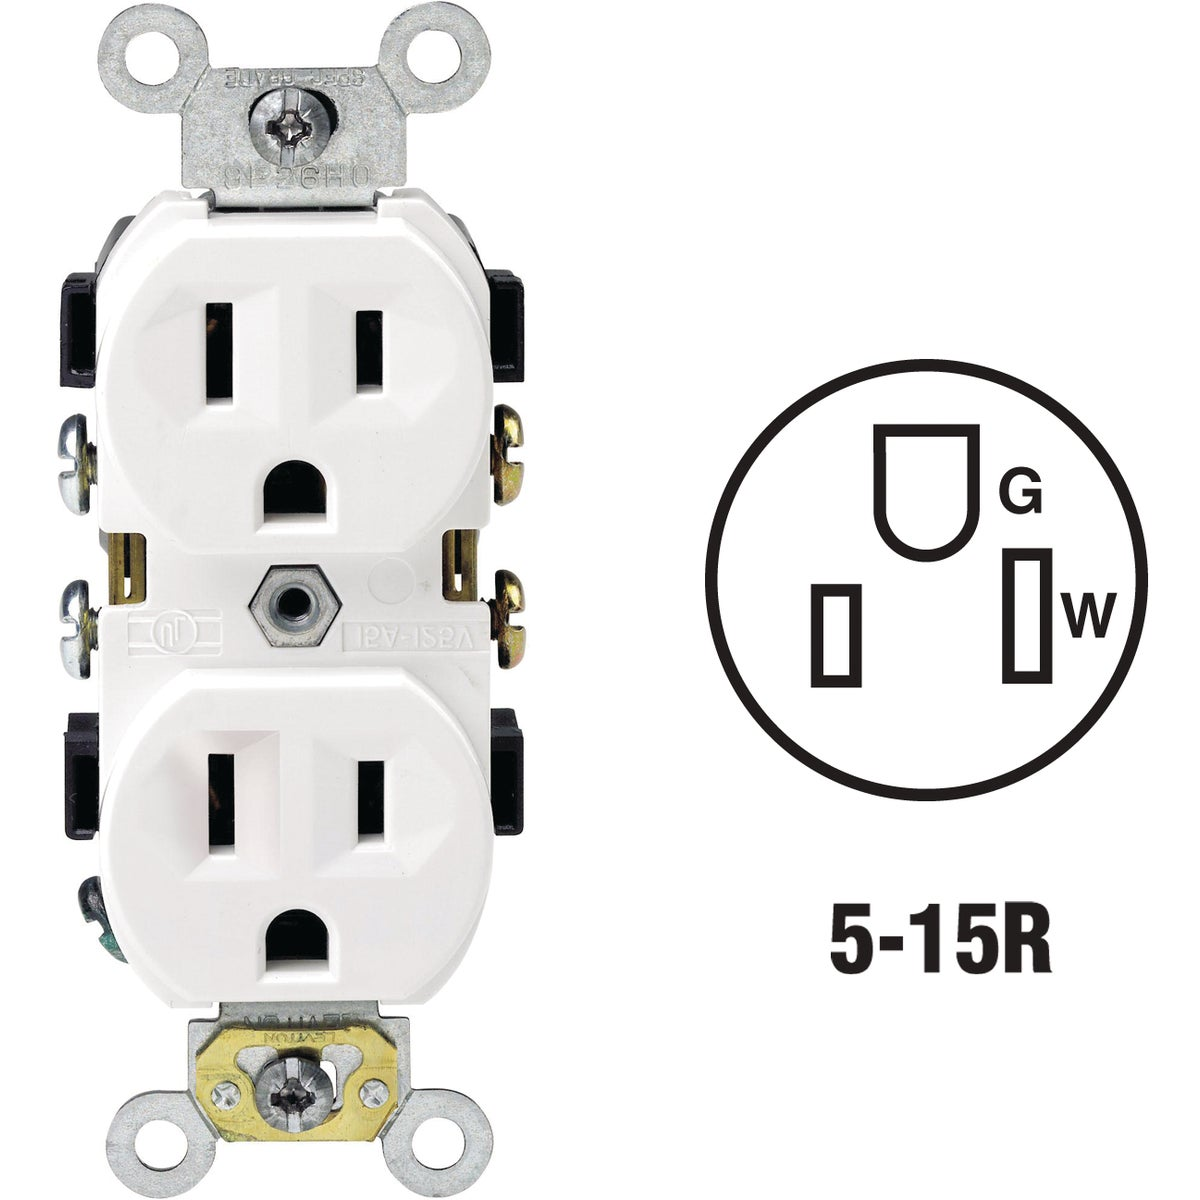 WHT DUPLEX OUTLET - S02-BR15-00W by Leviton Mfg Co